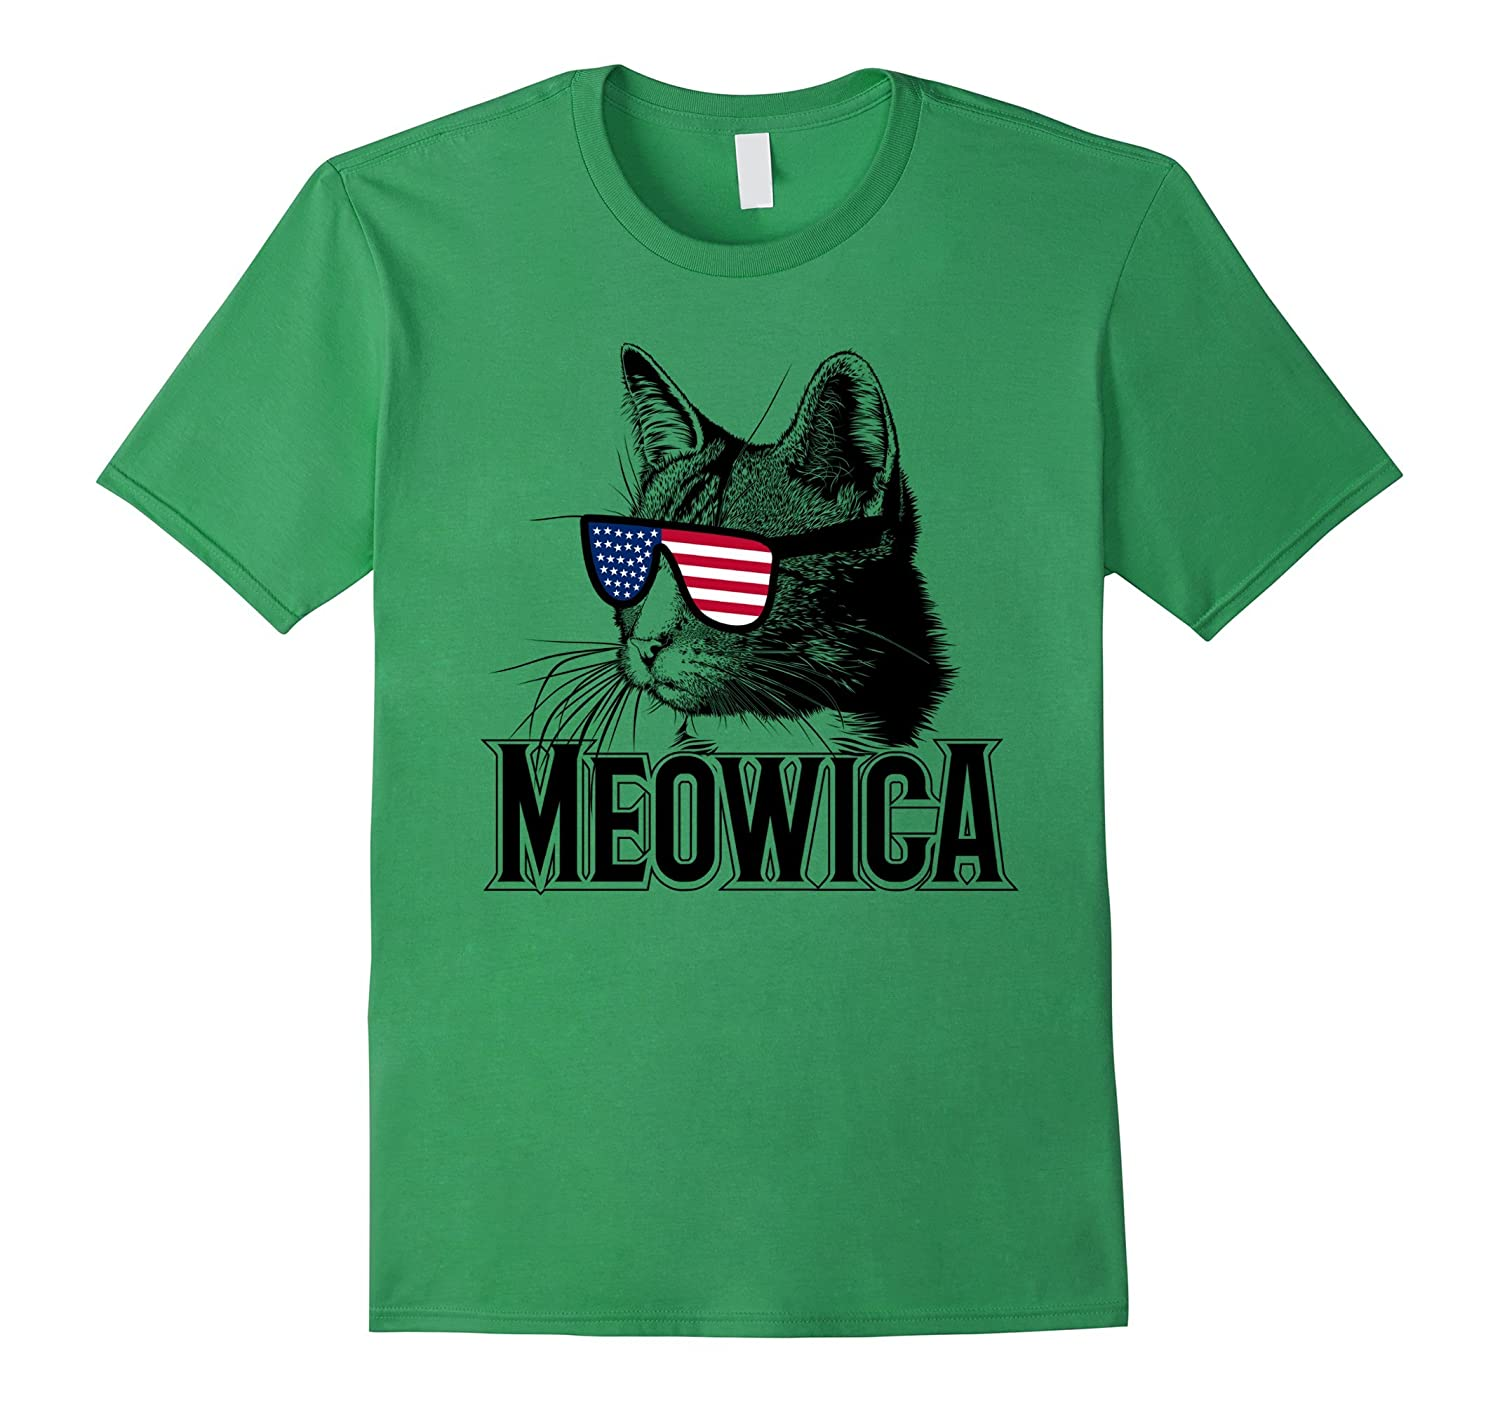 Meowica July 4th Funny Cat T-shirt-Teevkd